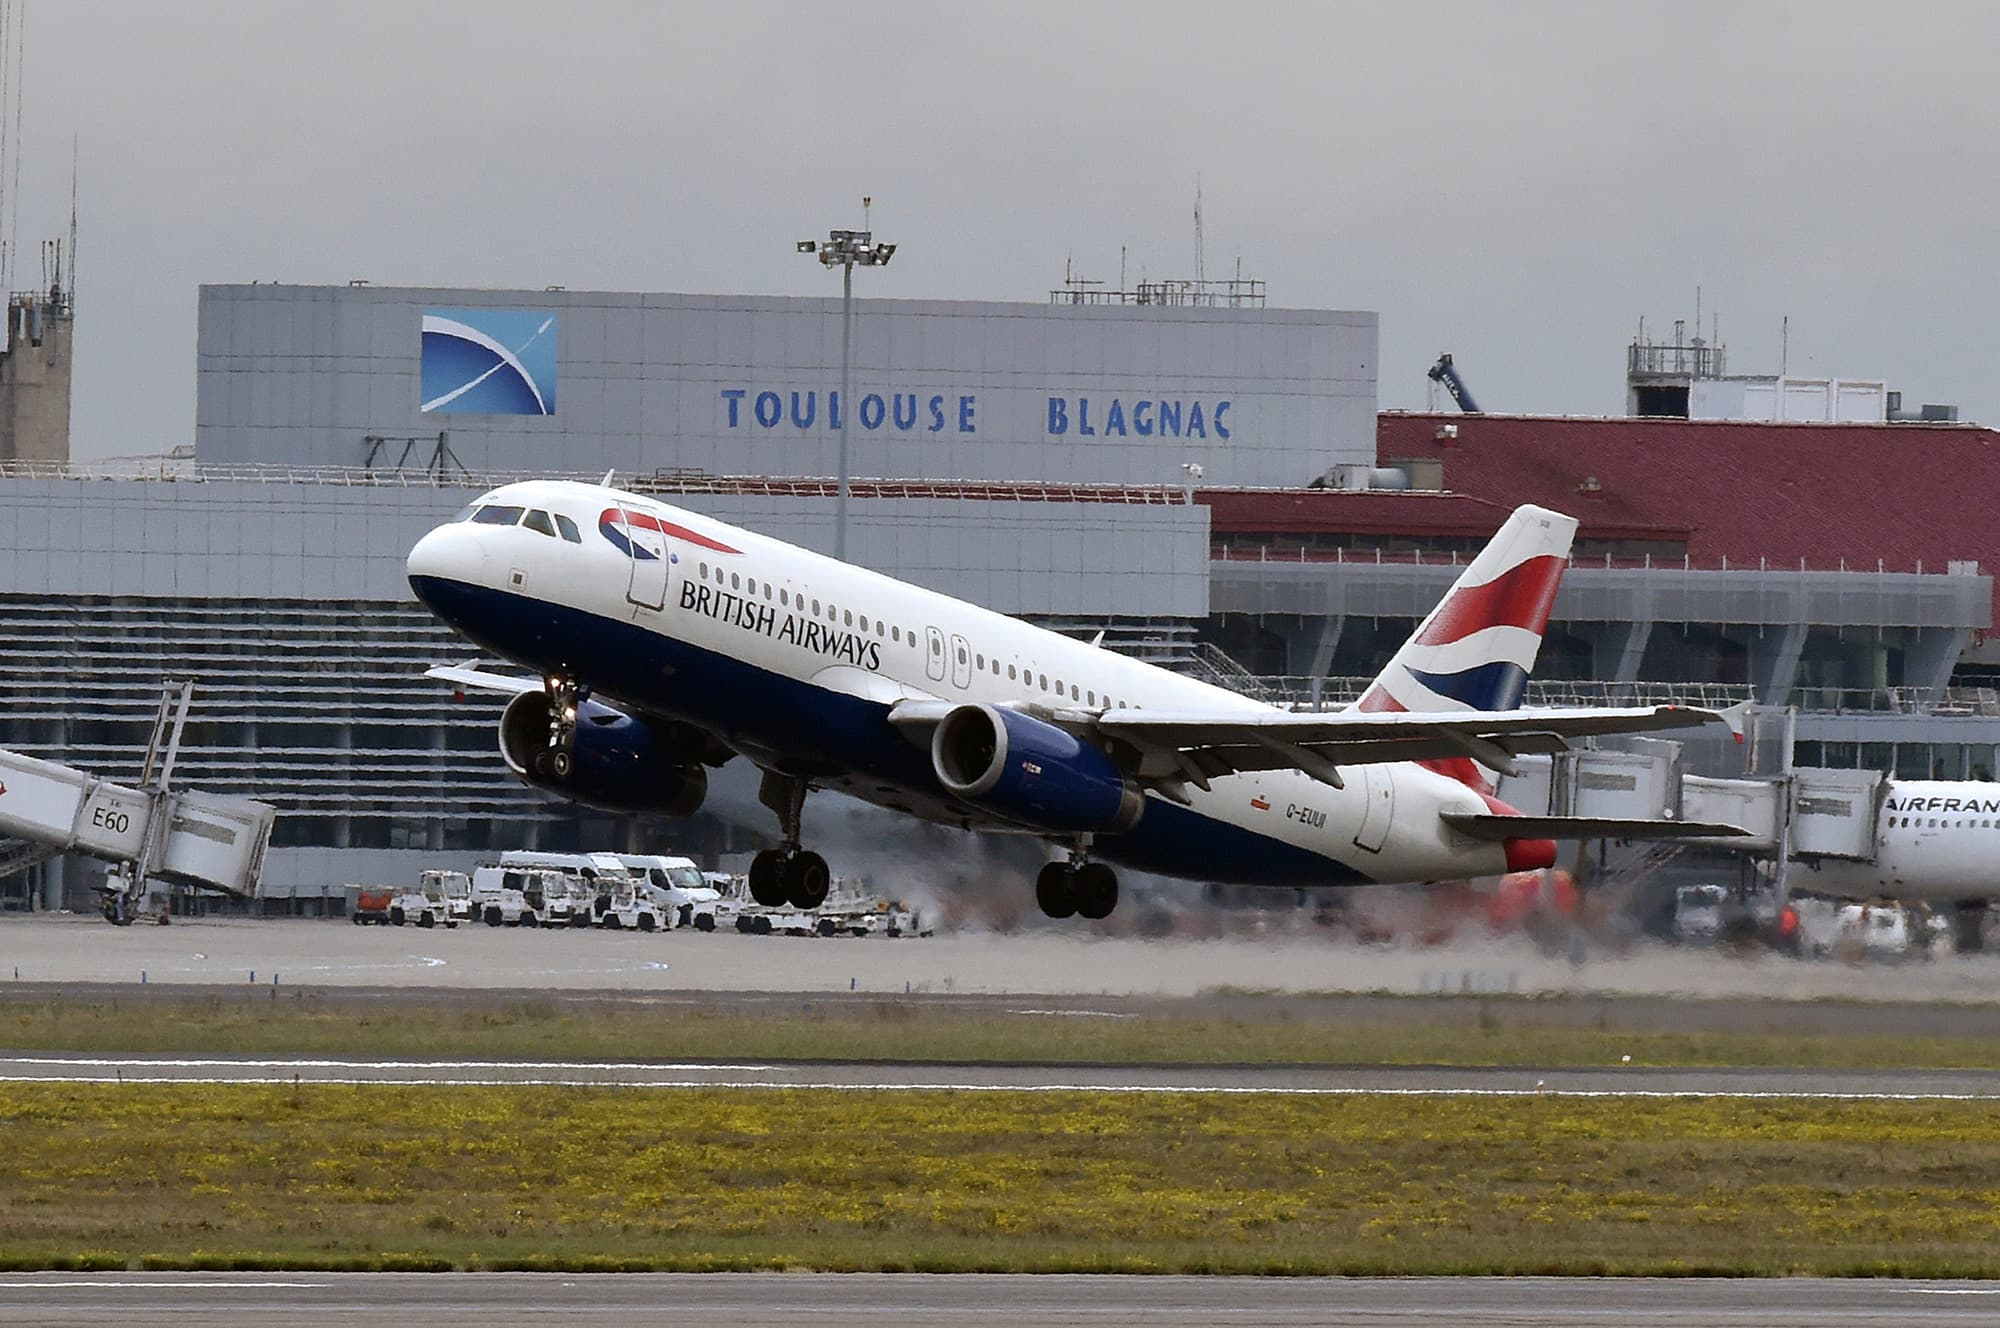 British Airways computer failure causes widespread flight cancellations and delays